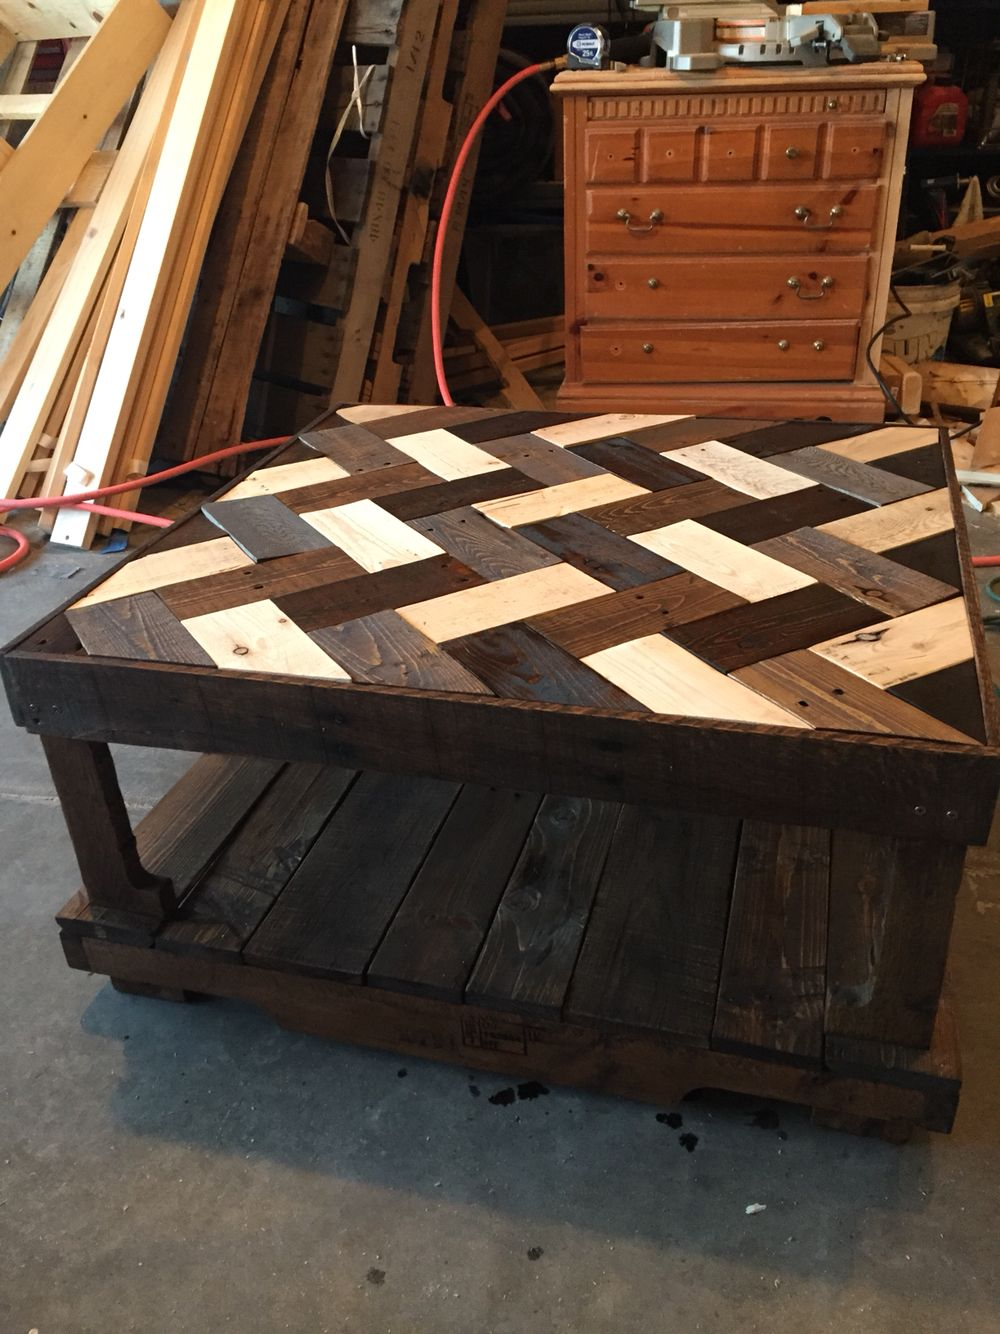 Wood pallet coffee table do you assume wood pallet coffee table - Find This Pin And More On Projects For Ease And Boredom Diy Herringbone Pallet Coffee Table